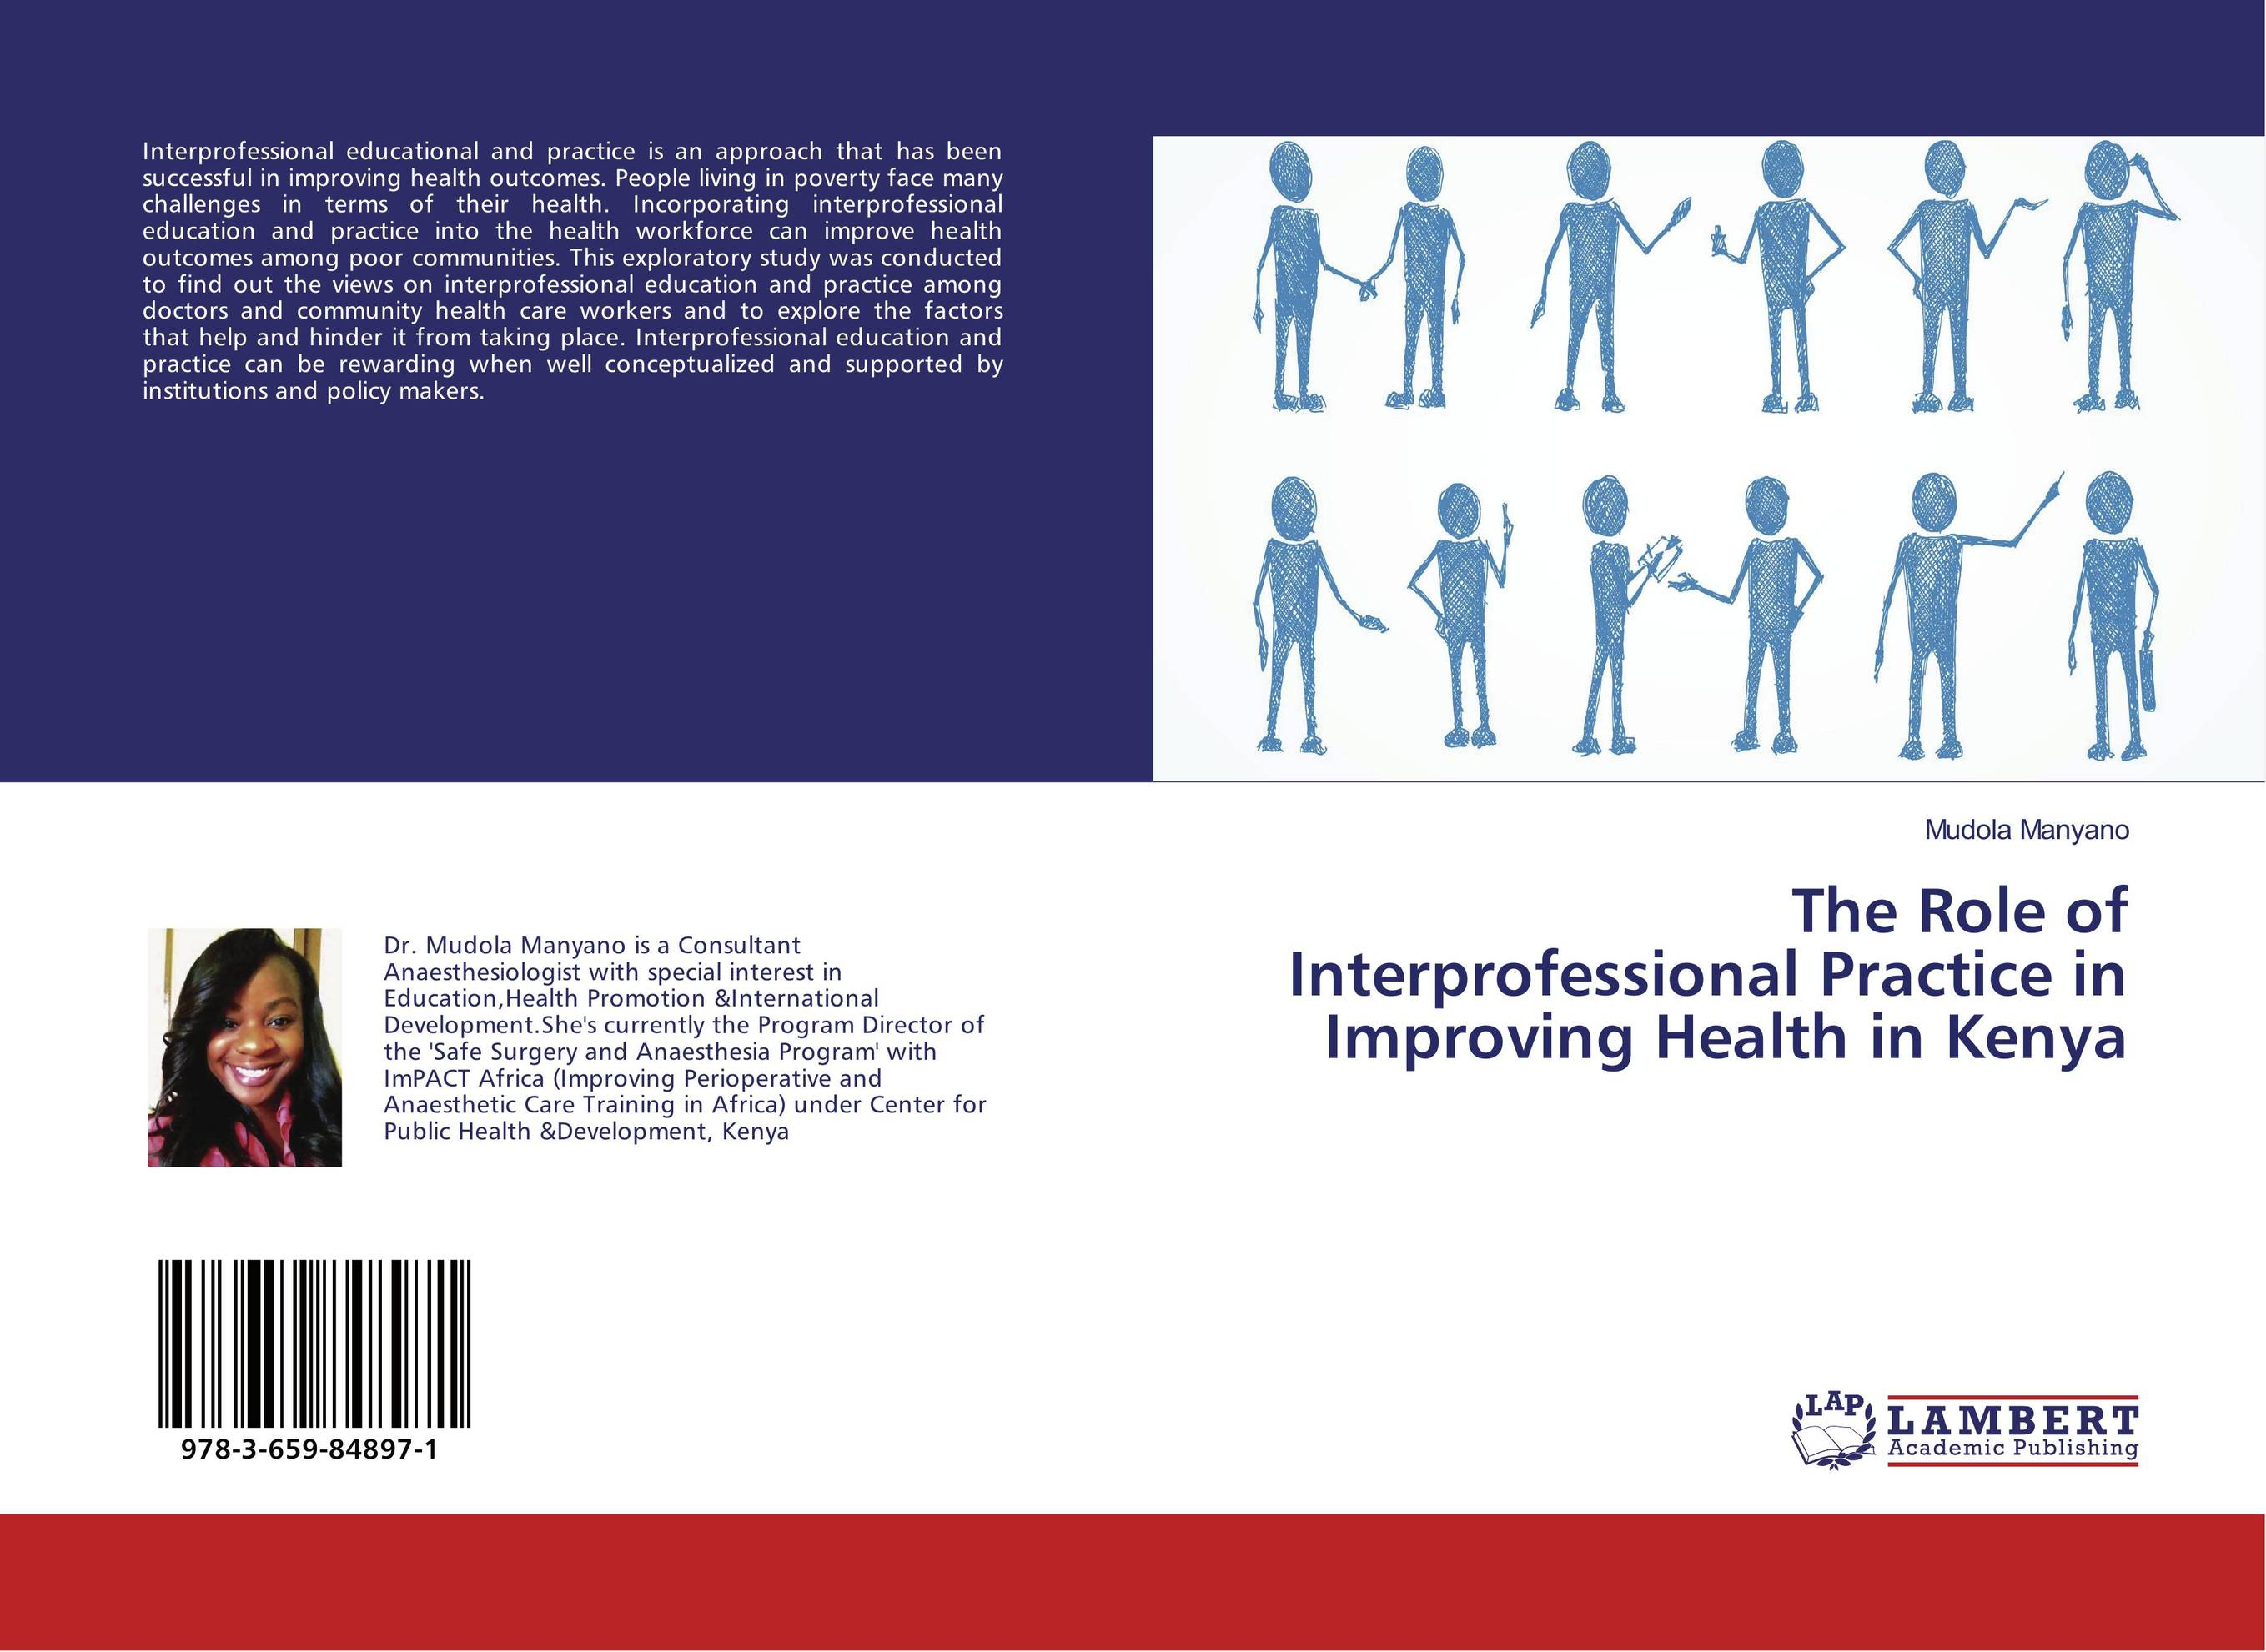 The Role of Interprofessional Practice in Improving Health in Kenya health awareness among continuing education workers